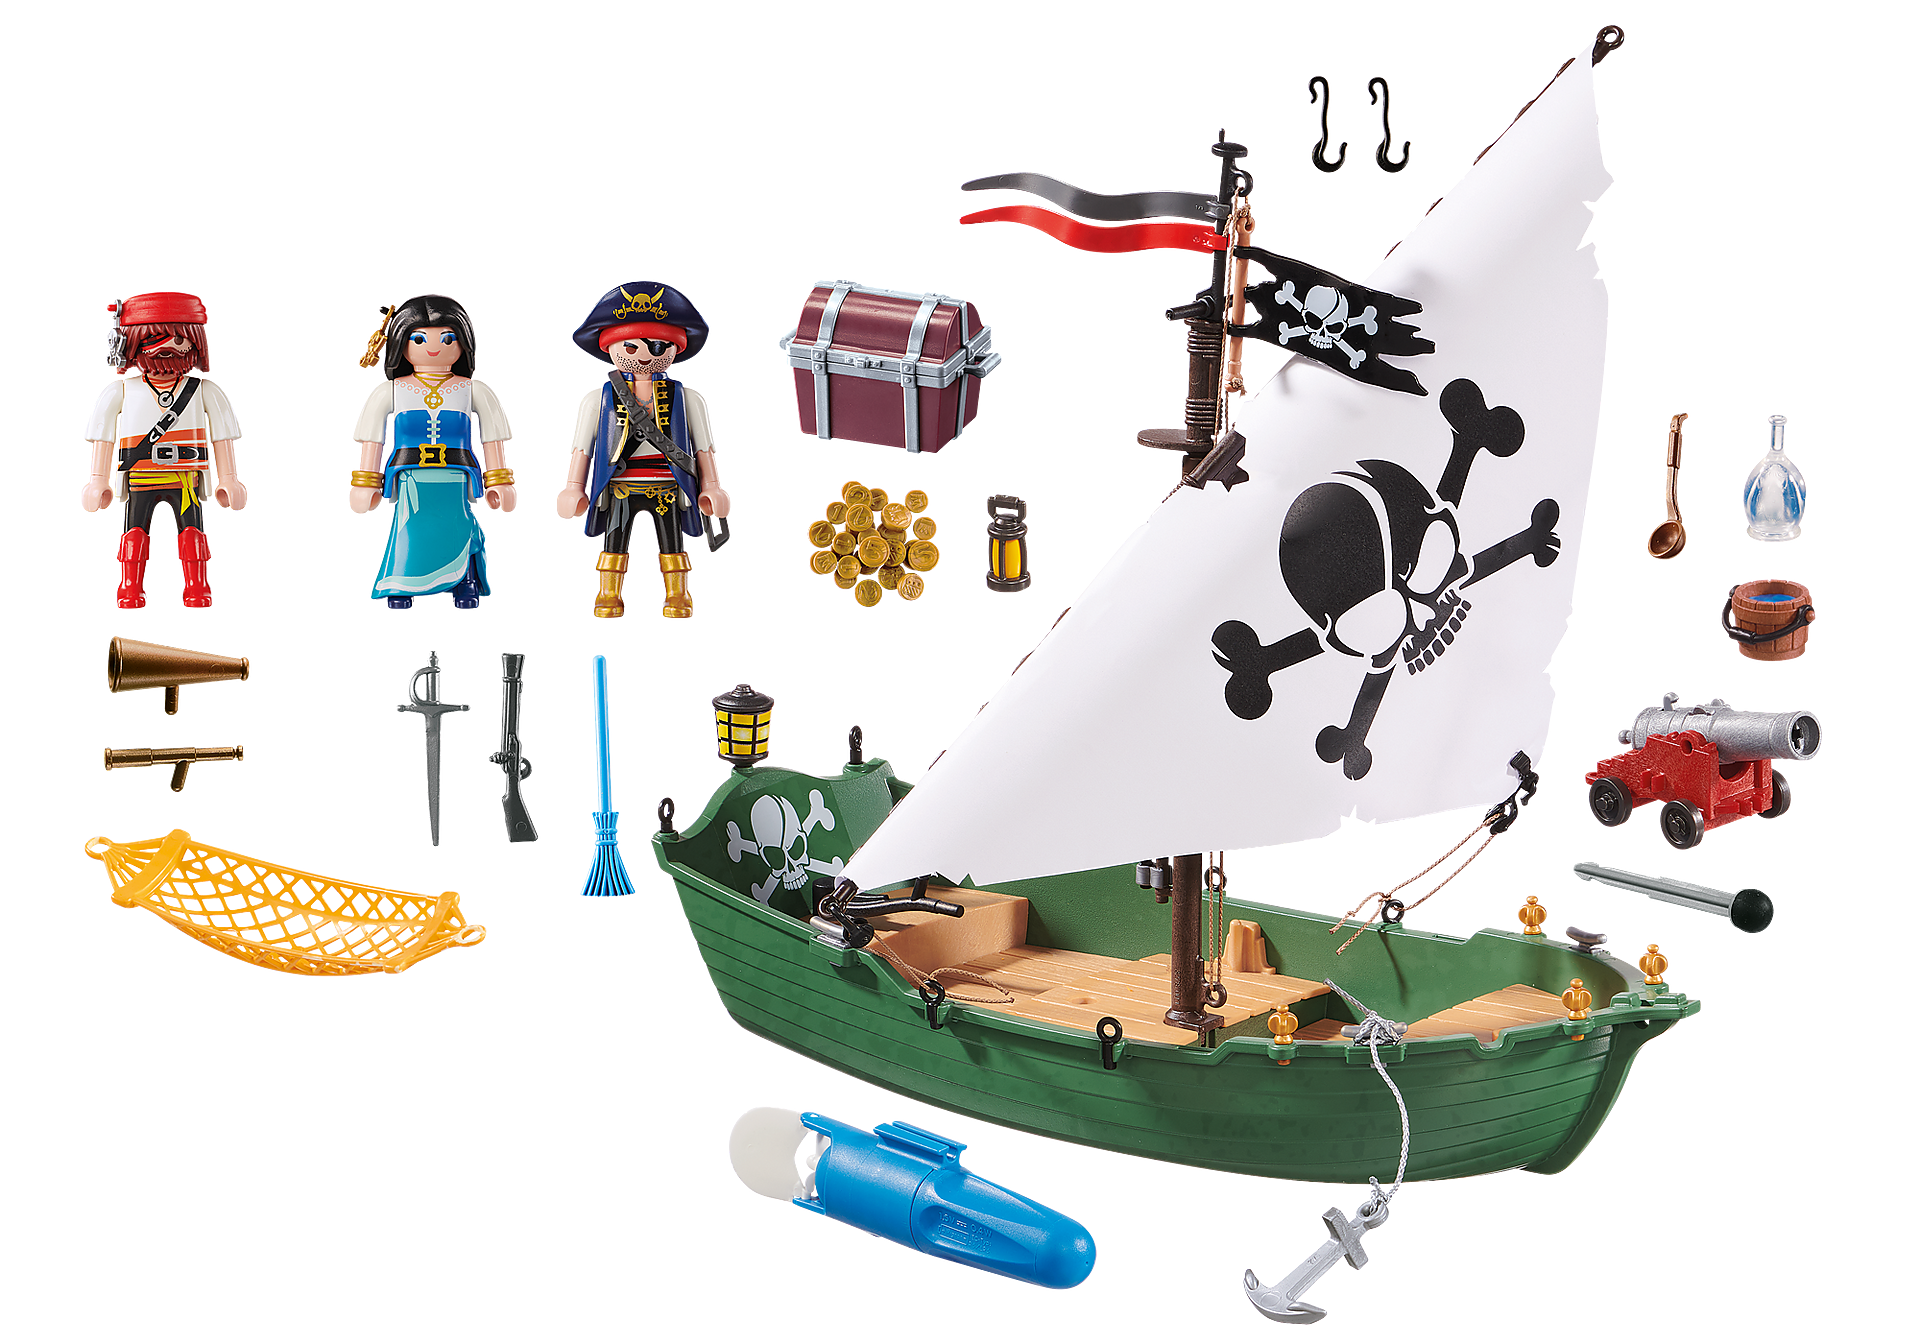 70151 Pirate Ship with Underwater Motor zoom image3